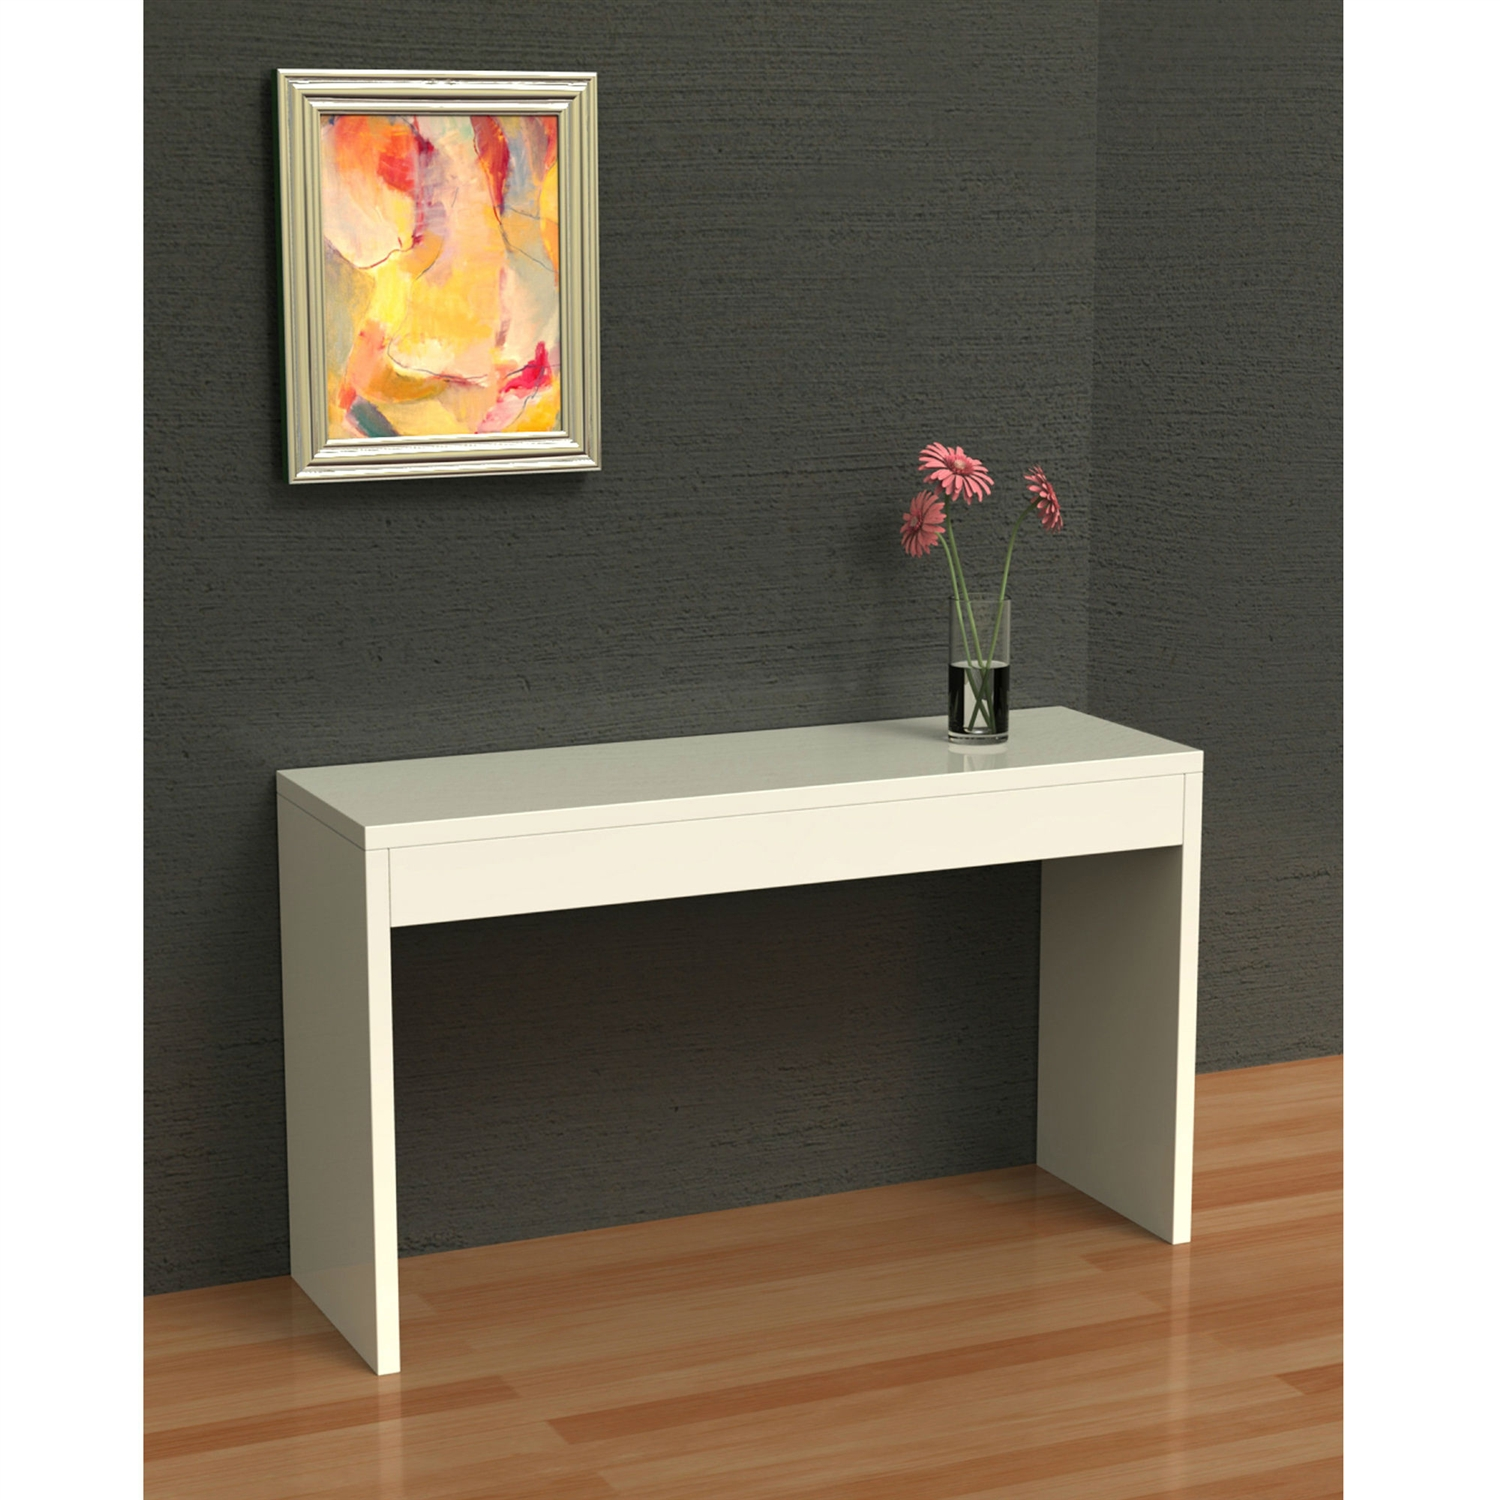 living room console paint colors for with dark furniture white sofa table modern entryway retail price 139 00